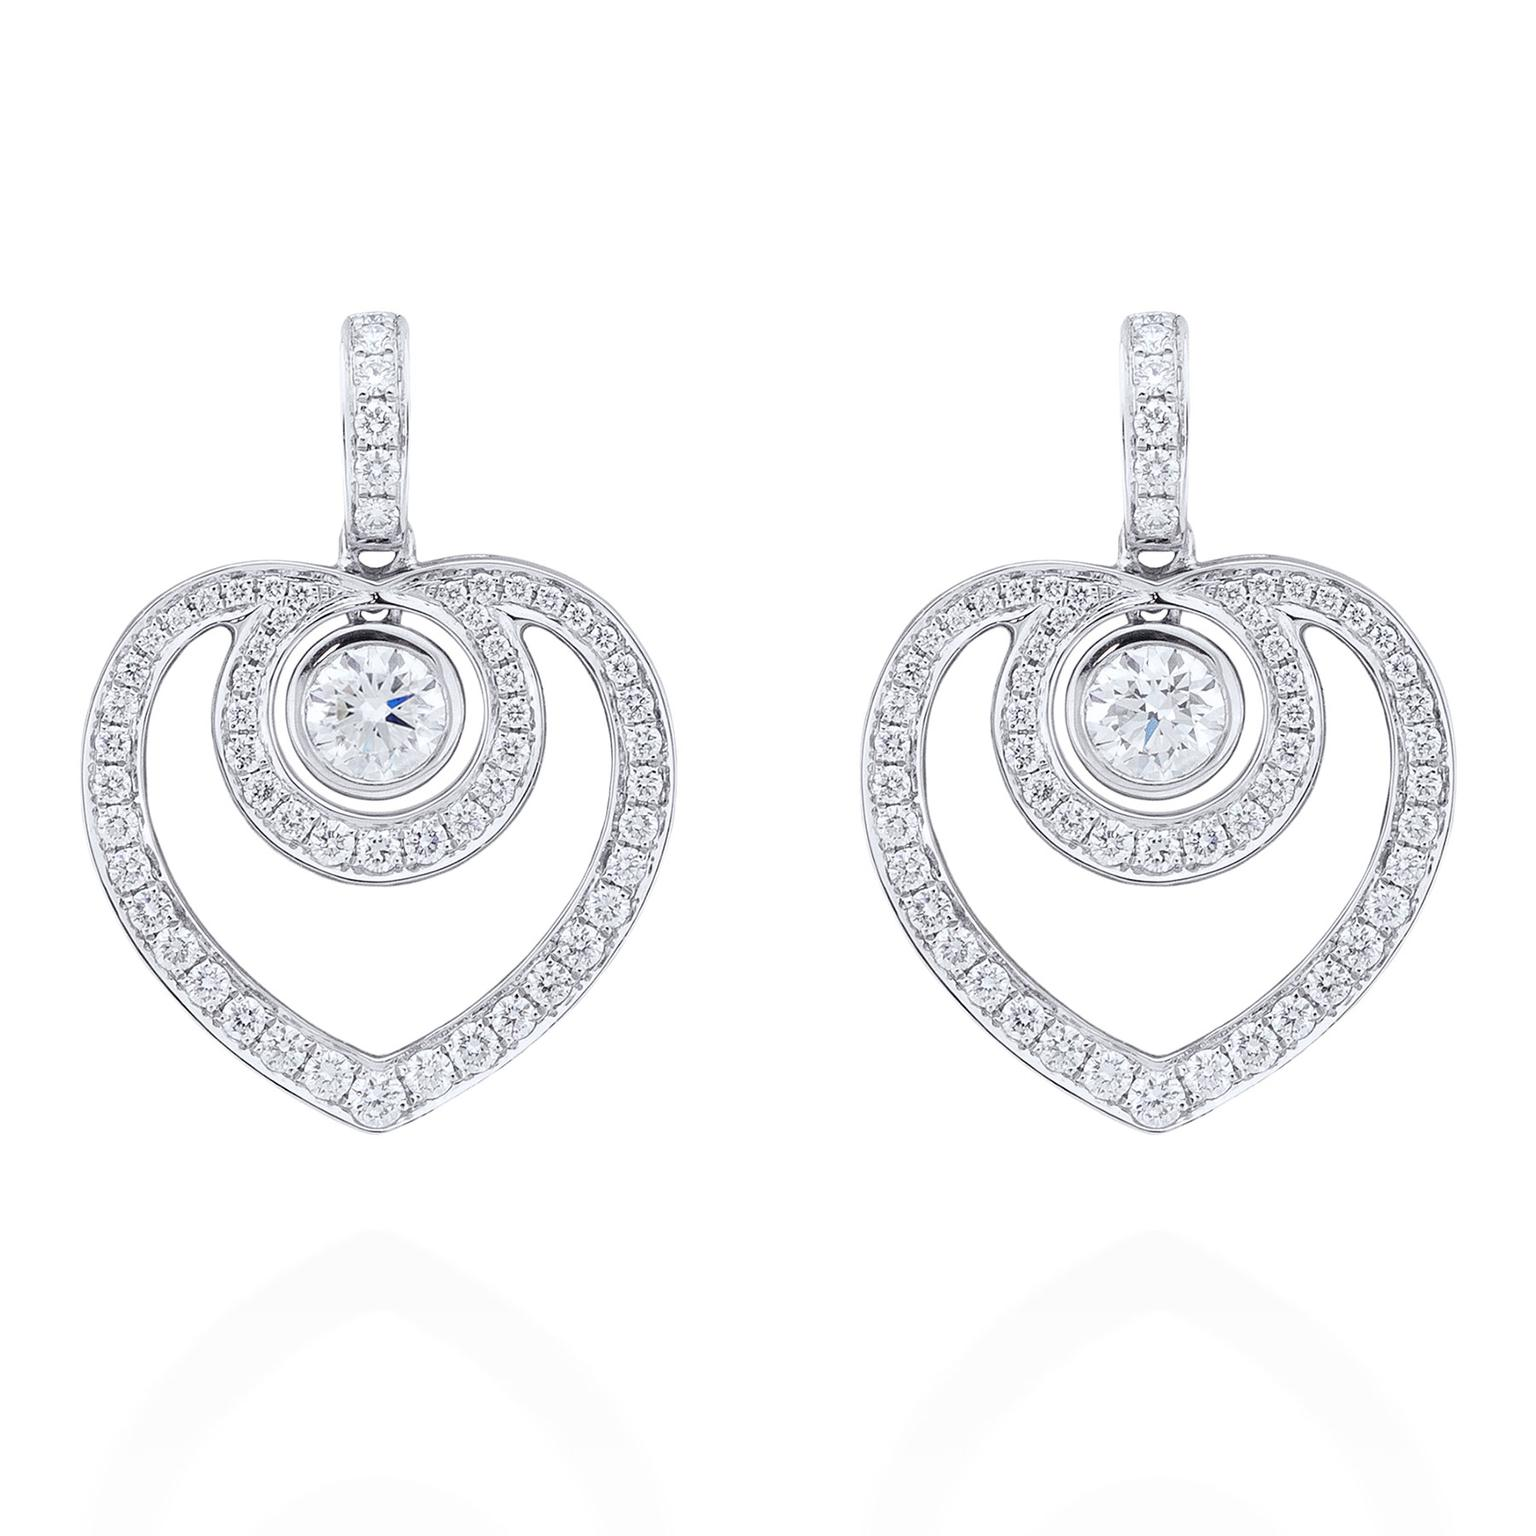 Boodles diamond earrings